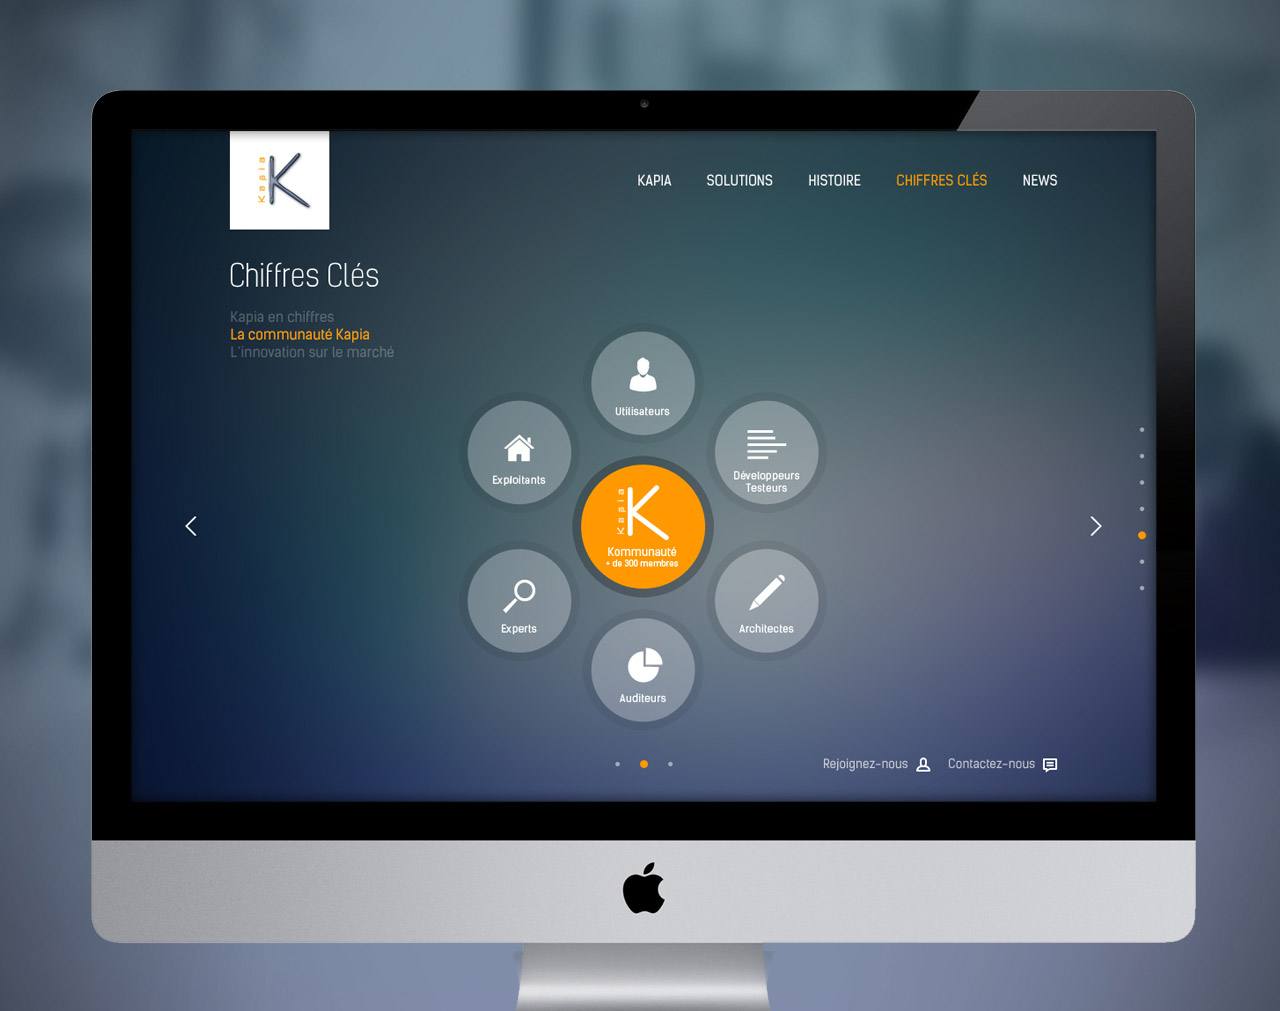 kapia-solutions-chiffres-2-site-internet-responsive-design-creation-communication-caconcept-alexis-cretin-graphiste